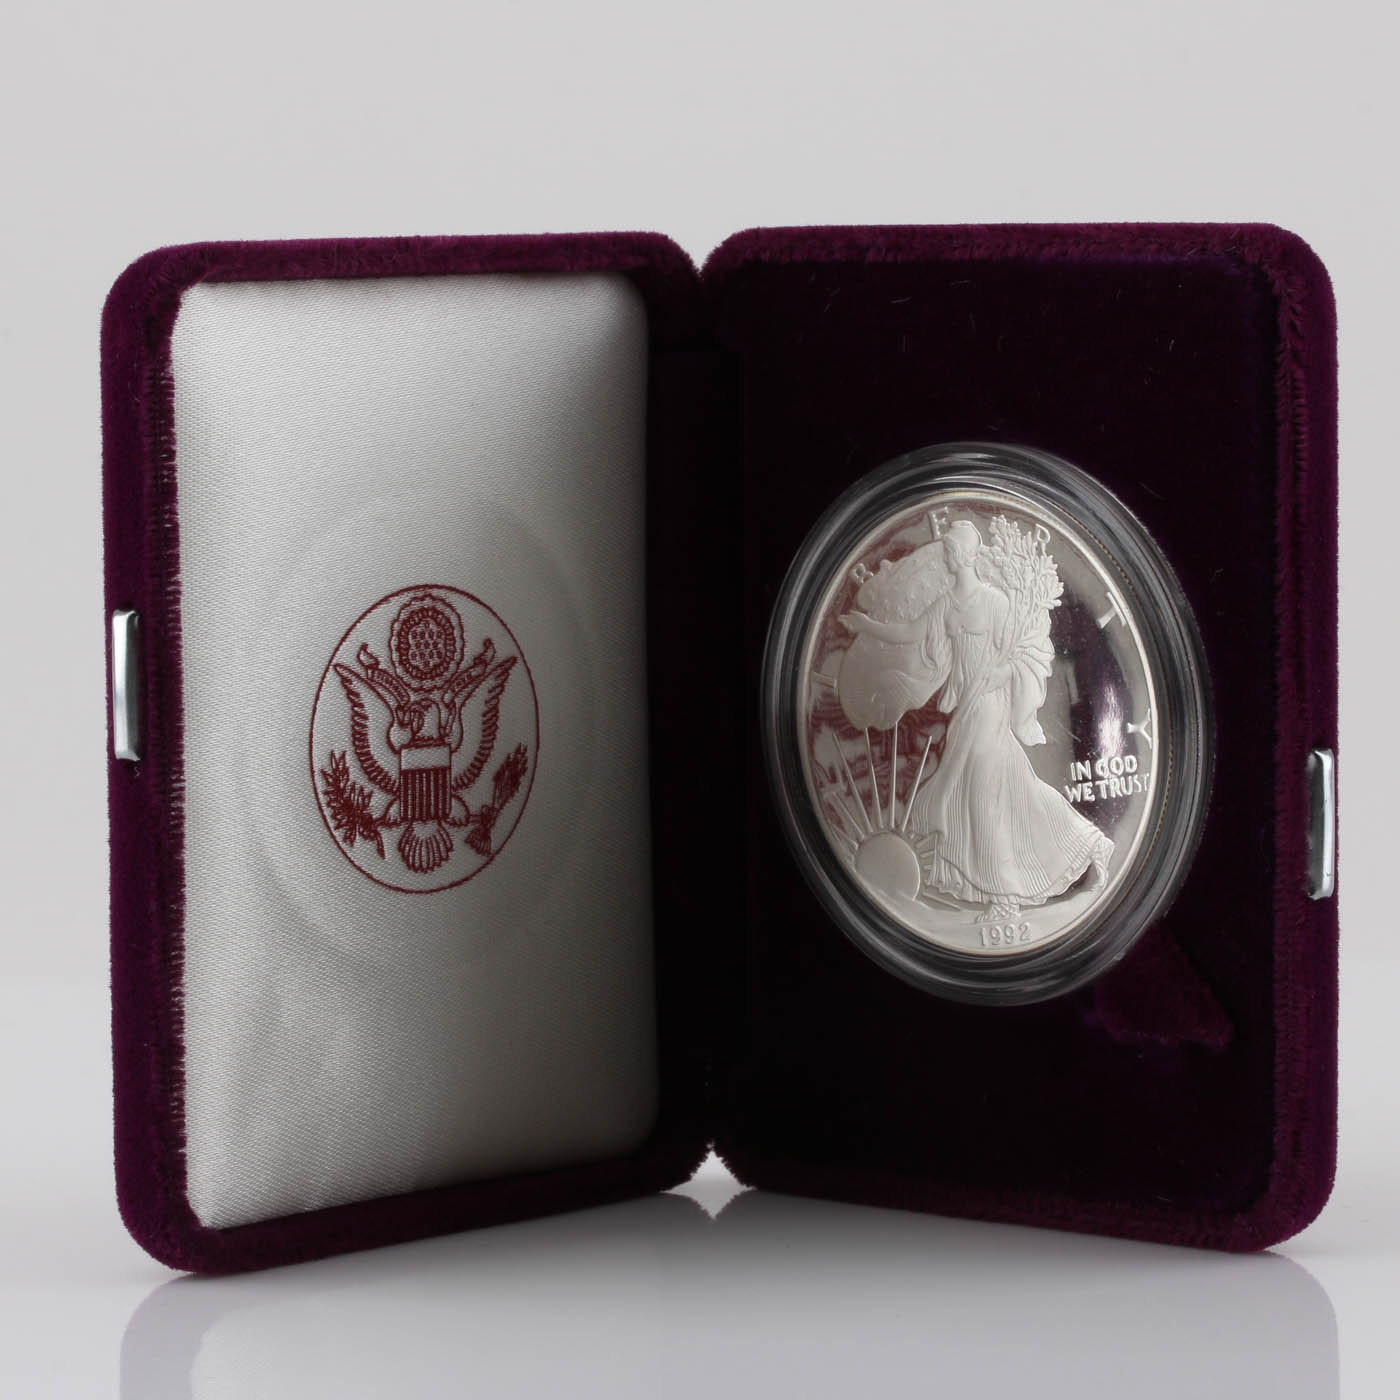 1992-S One Dollar U.S. Silver Eagle Proof Coin